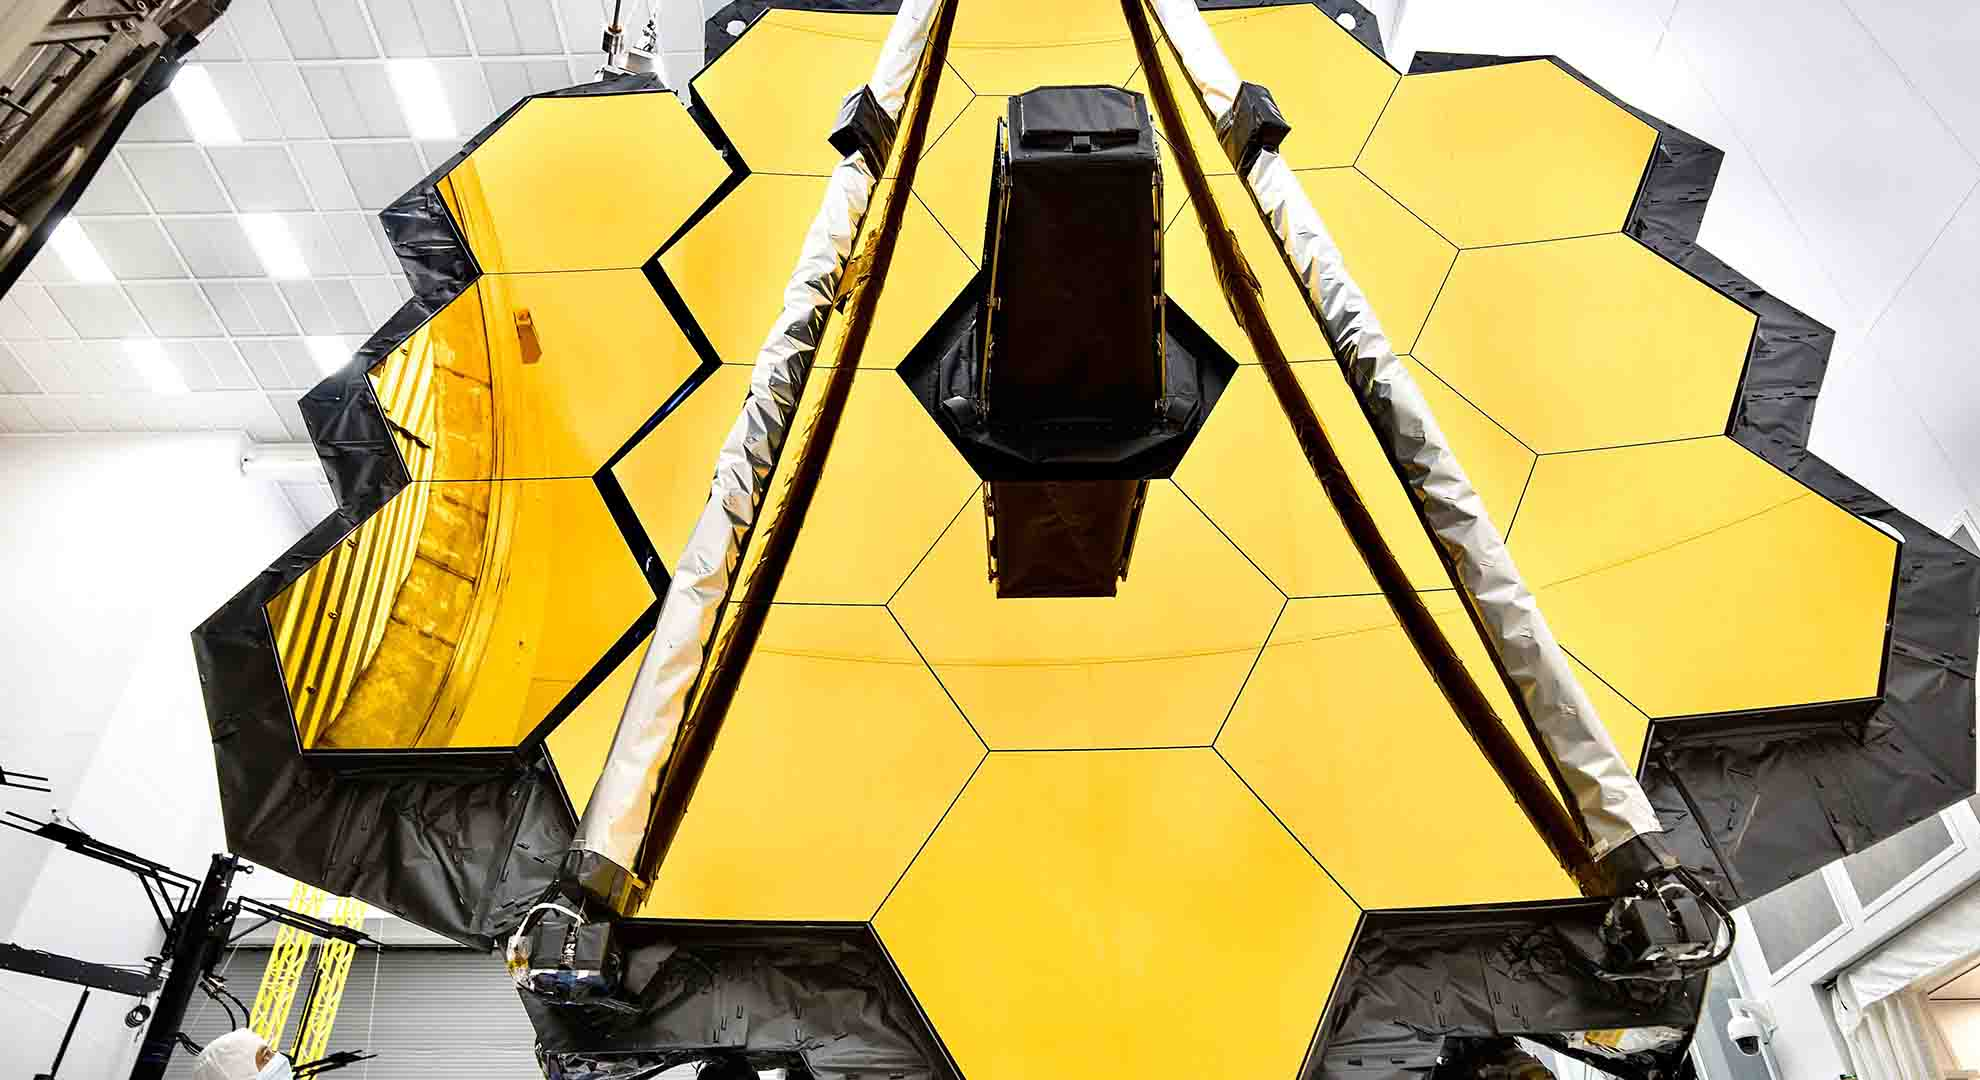 The James Webb Space Telescope under testing before its scheduled launch in 2021